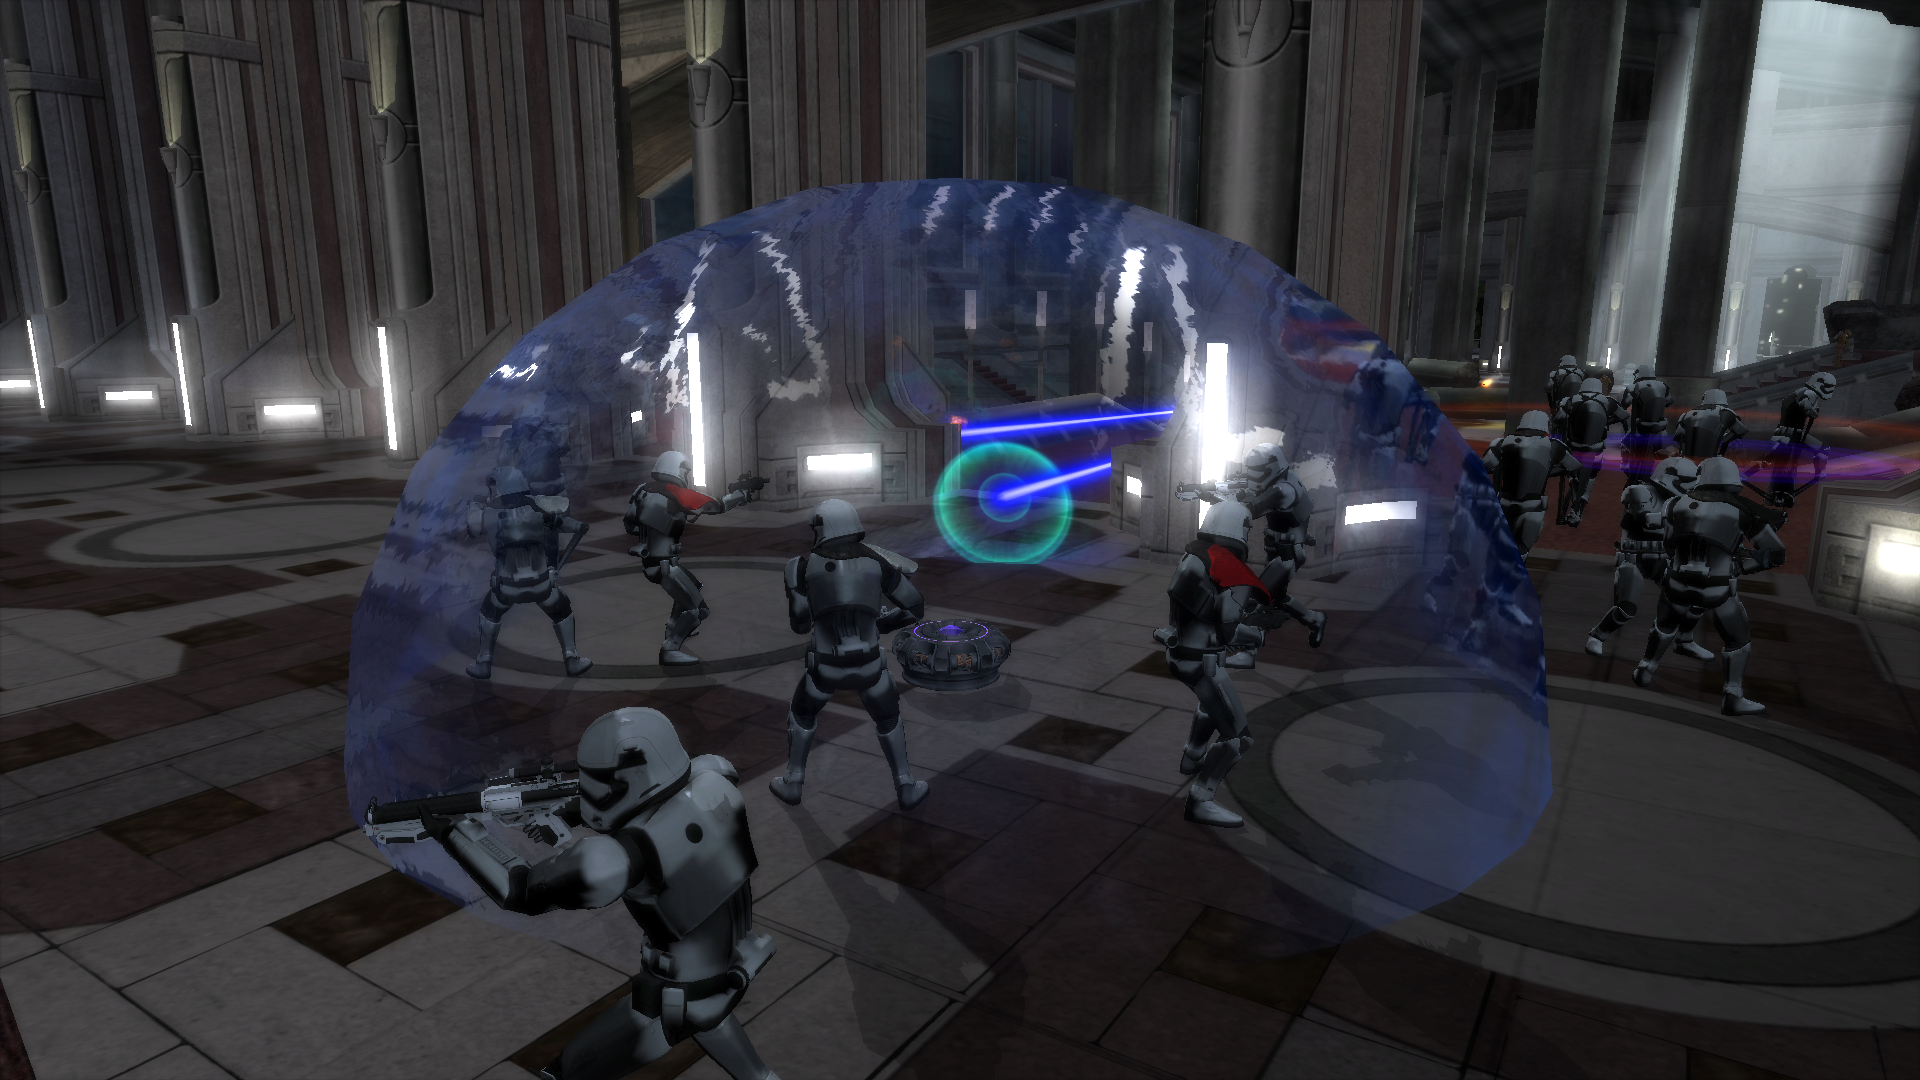 Officer S Shield Generator Image Star Wars A New Frontier Mod For Star Wars Battlefront Ii Mod Db